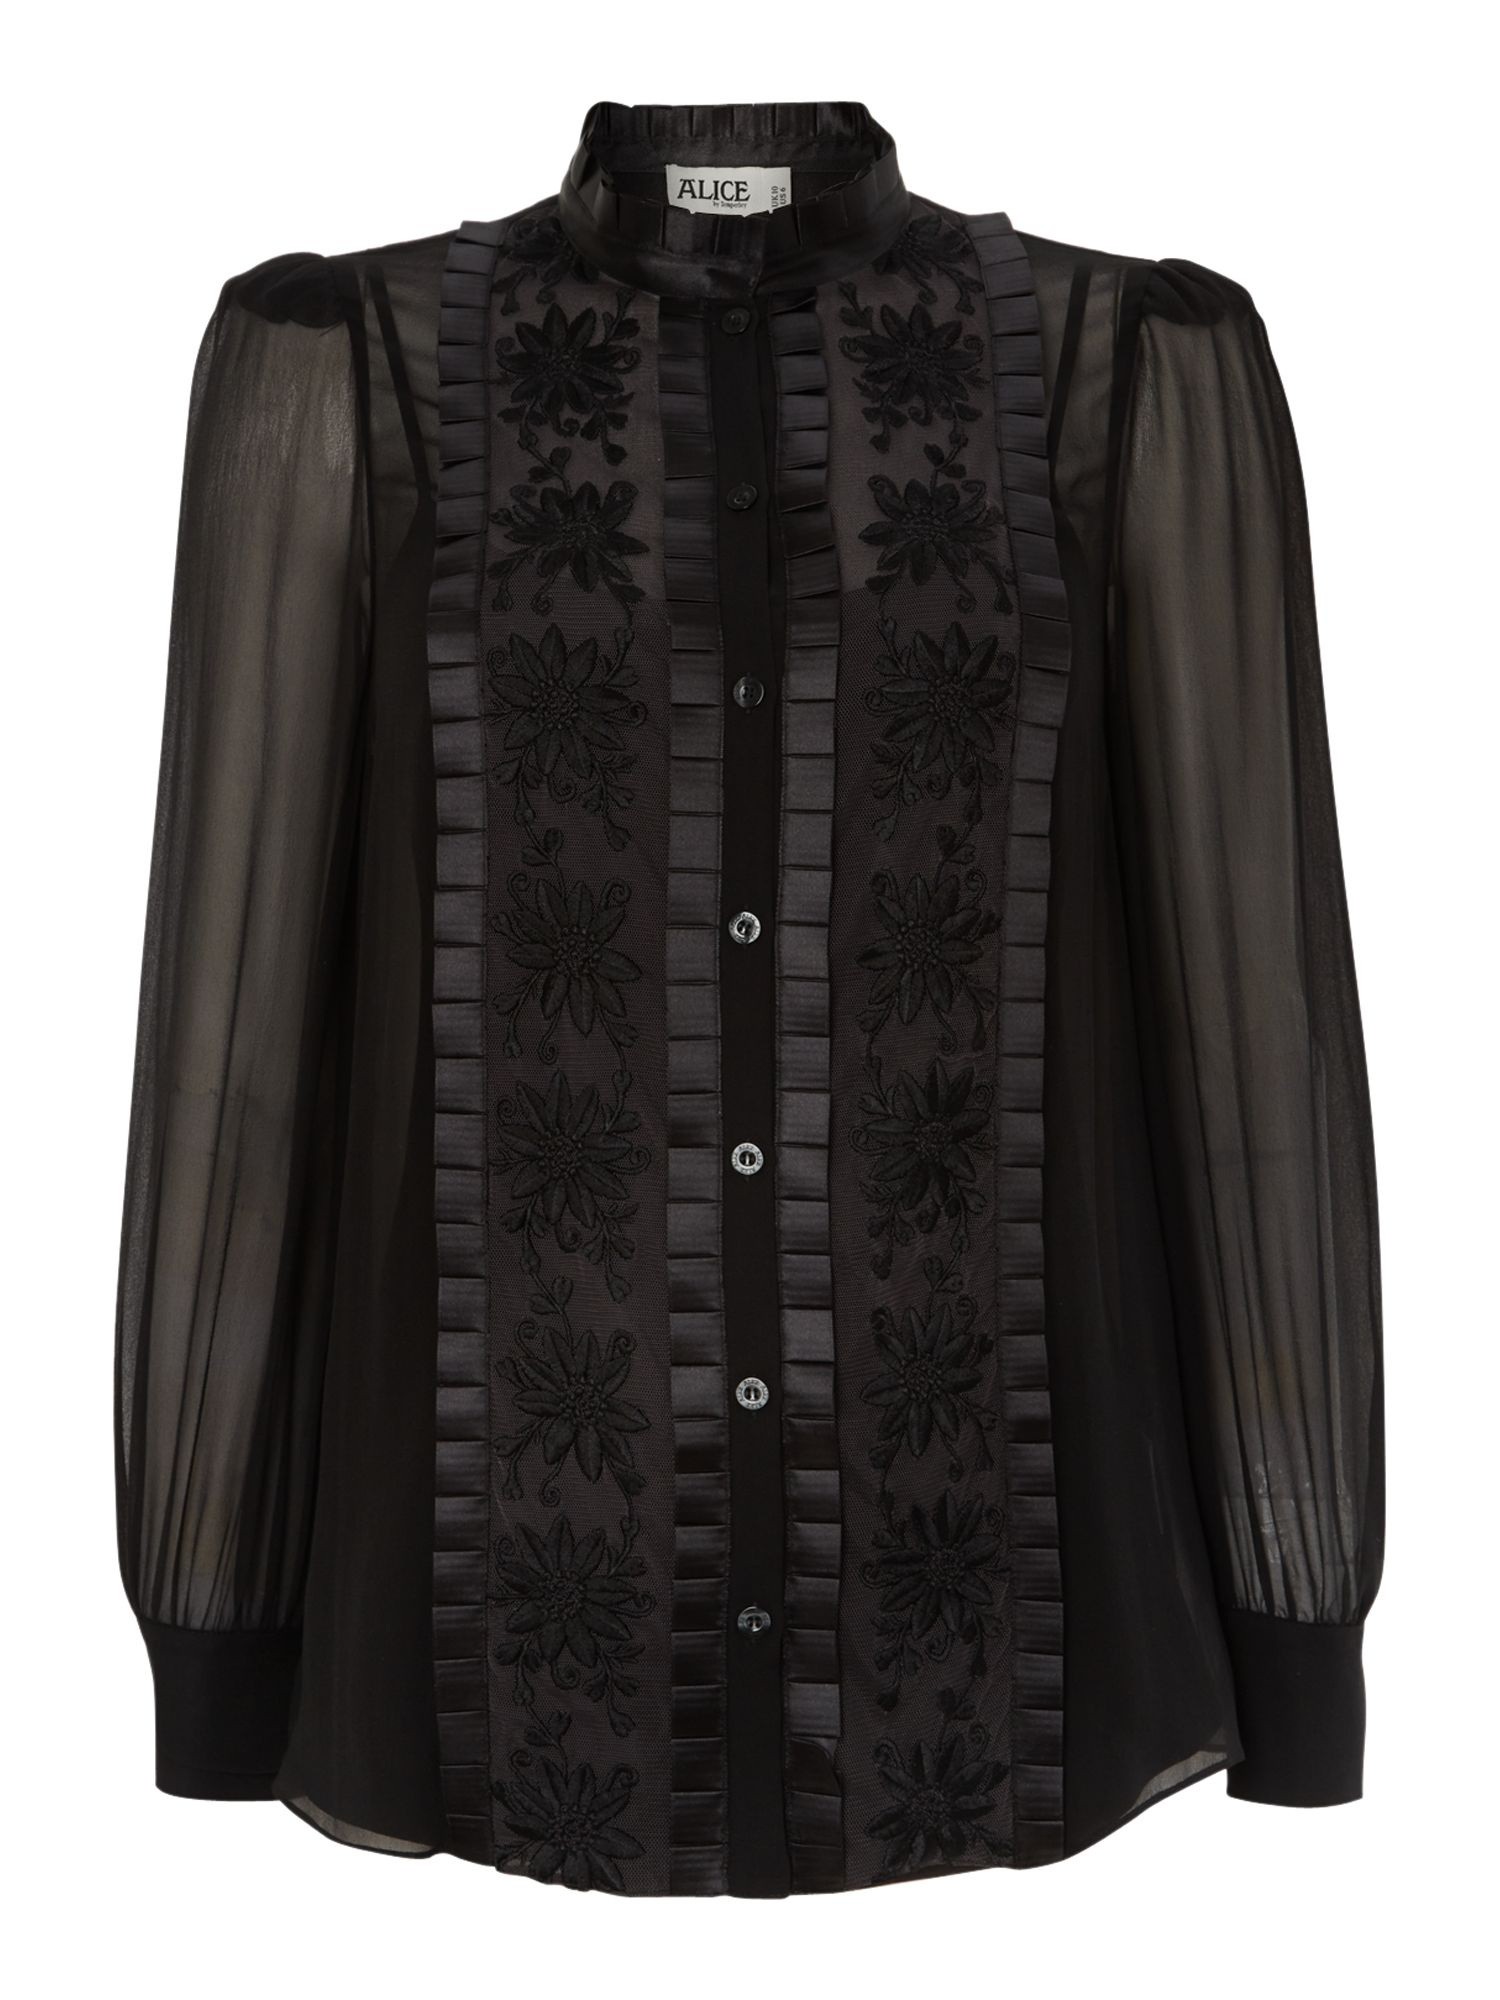 Long sleeve mesh blouse with brocade detail